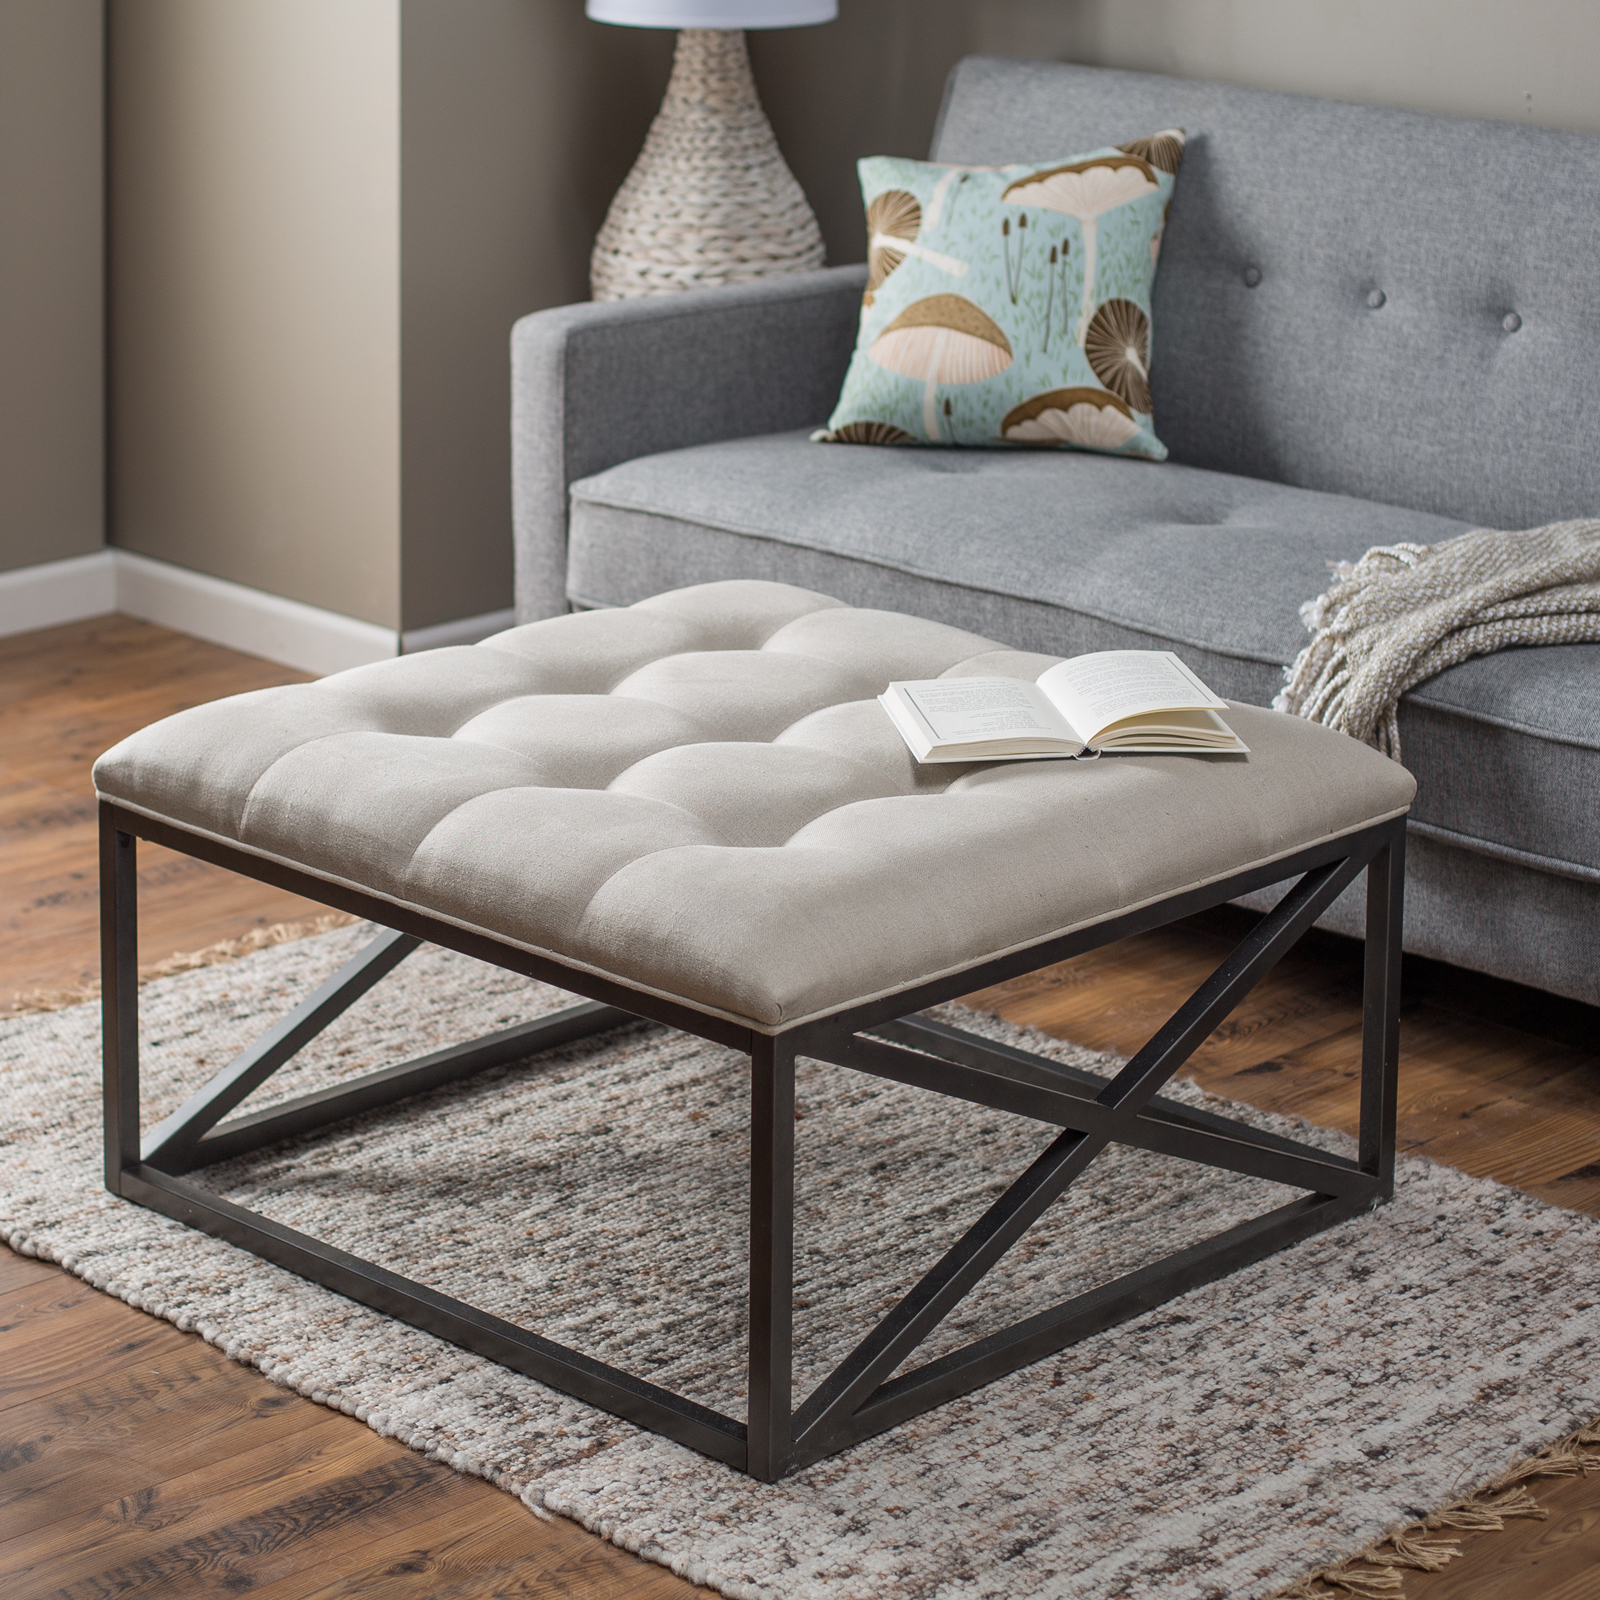 Gentil Belham Living Grayson Tufted Coffee Table Ottoman